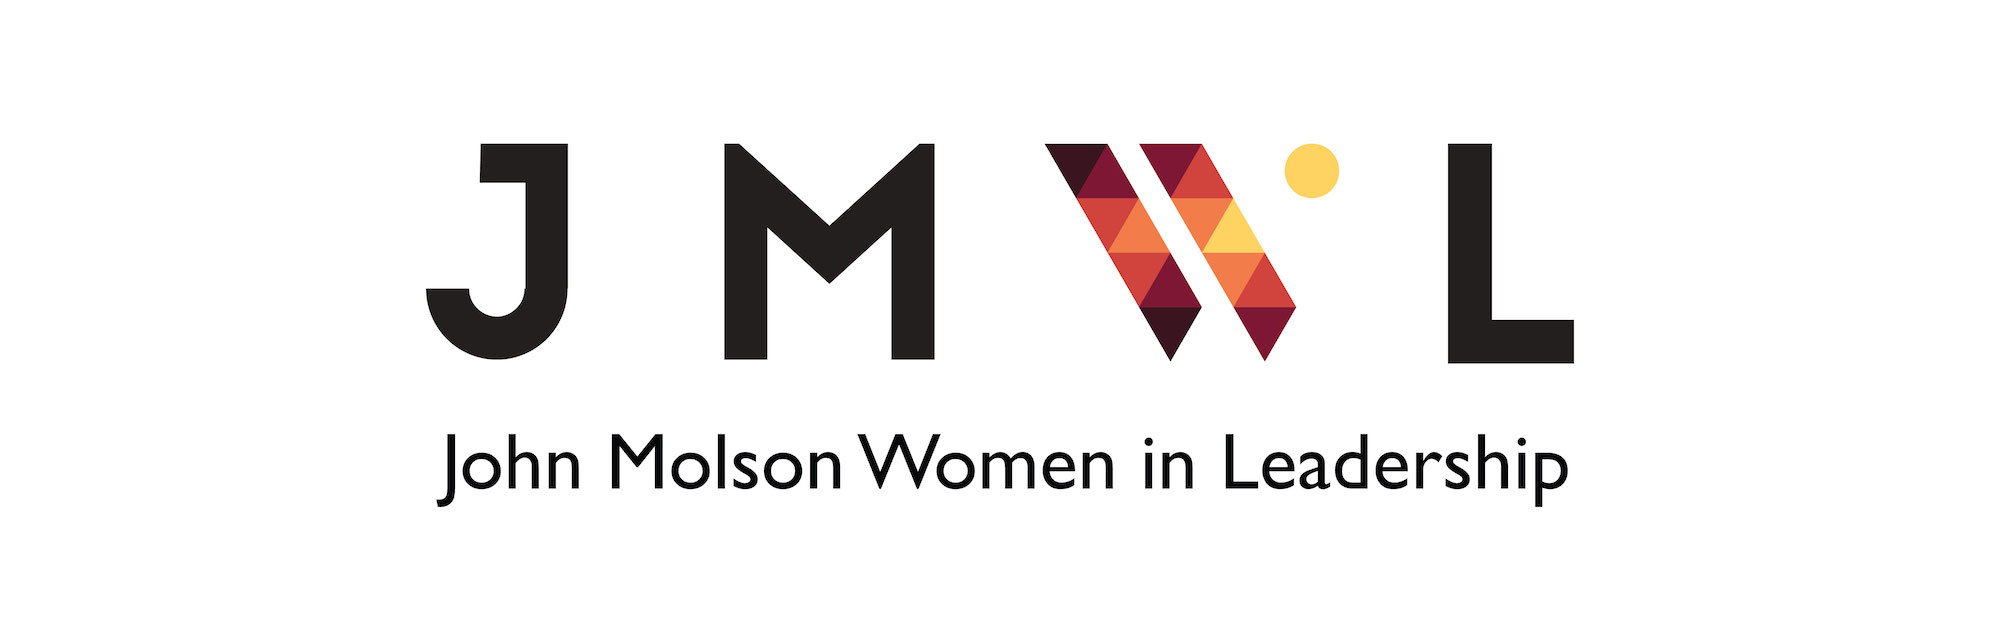 John Molson Women in Leadership logo